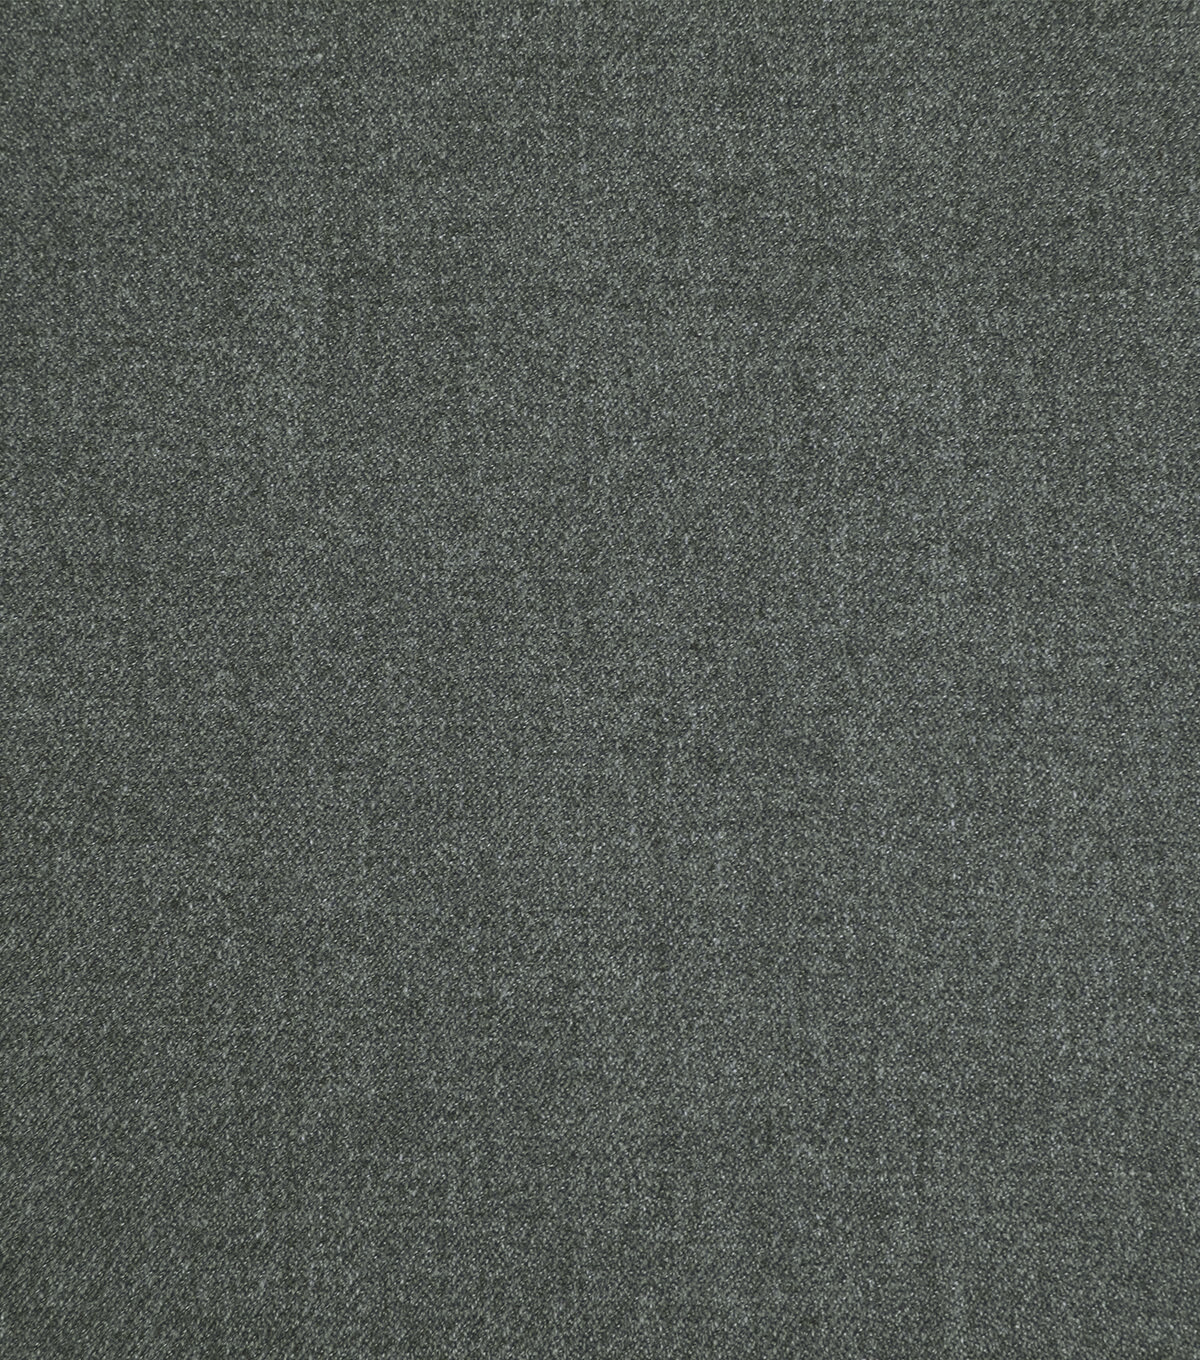 Check It Polyester Rayon Twill Fabric 58\u0022-Charcoal